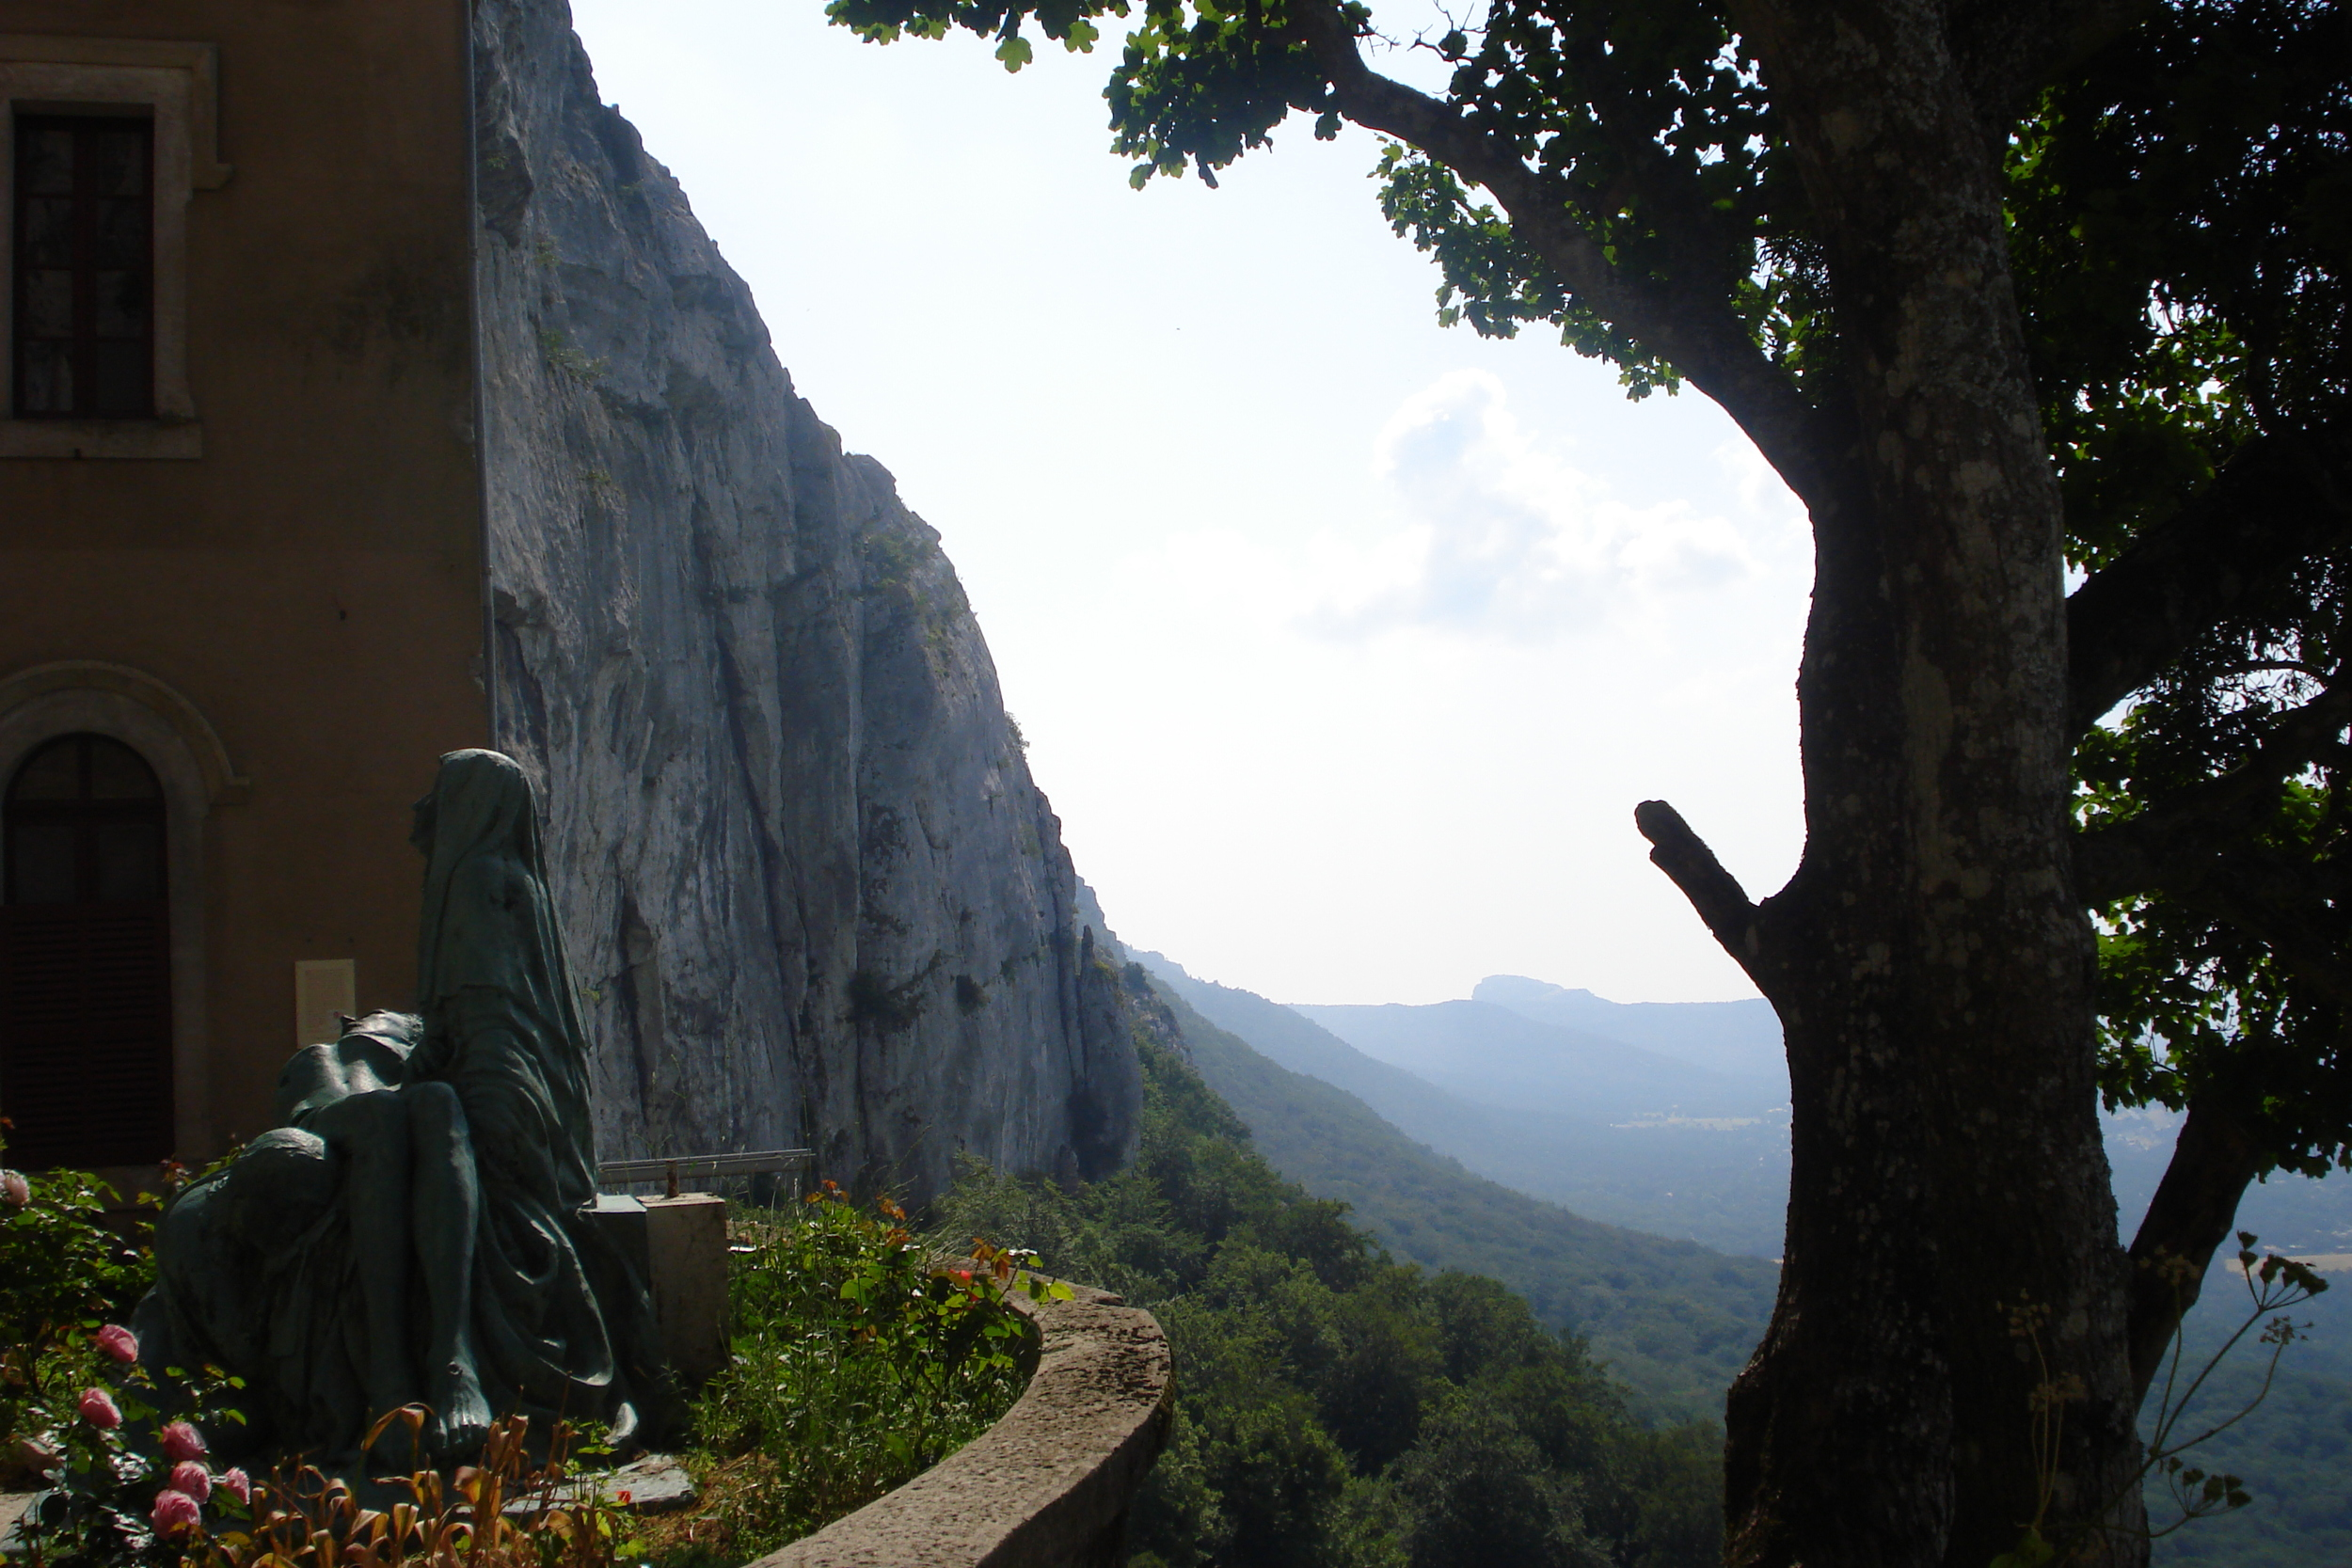 The grotto of Mary Magdalene at Ste. Baume in Southern France.